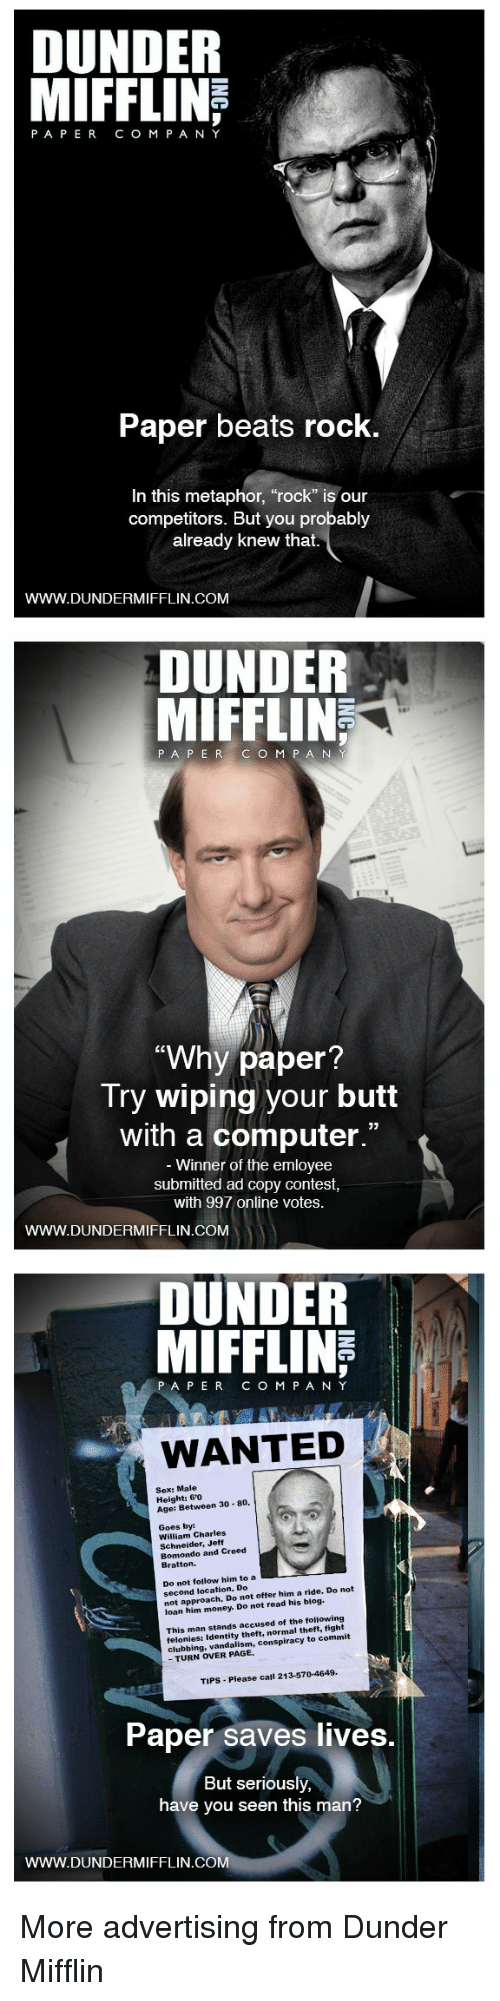 "have you seen this: DUNDER  PAPERCO M P A NY  Paper beats rock  In this metaphor, ""rock"" is our  competitors. But you probably  already knew that.  WWW.DUNDERMIFFLIN.COM   DUNDER  MIFFLIN  187  PA P ERC O M P A N  ""Why paper  Try wiping your butt  with a computer.""  Winner of the emloyee  submitted ad copy contest  with 997 online votes.  WWW.DUNDERMIFFLIN.COM   DUNDER  MIFFLINE  PAPERCOM PANY  WANTED  Sex: Male  Height: 60  Age: Between 30 80.  Goes by  William Charles  Schneider, Jeff  Bomondo and Creed  Bratton.  Do not follow him to a EEE  second location. Do  not approach. Do not offer him a ride. Do not  loan him money. Do not read his blog.  This man stands accused of the following  felonies: Identity theft, normal theft, fight  clubbing, vandalism, conspiracy to commit  - TURN OVER PAGE.  TIPS-Please call 213-570-4649  Paper saves lives.  But seriously,  have you seen this man?  WWW.DUNDERMIFFLIN.COM More advertising from Dunder Mifflin"